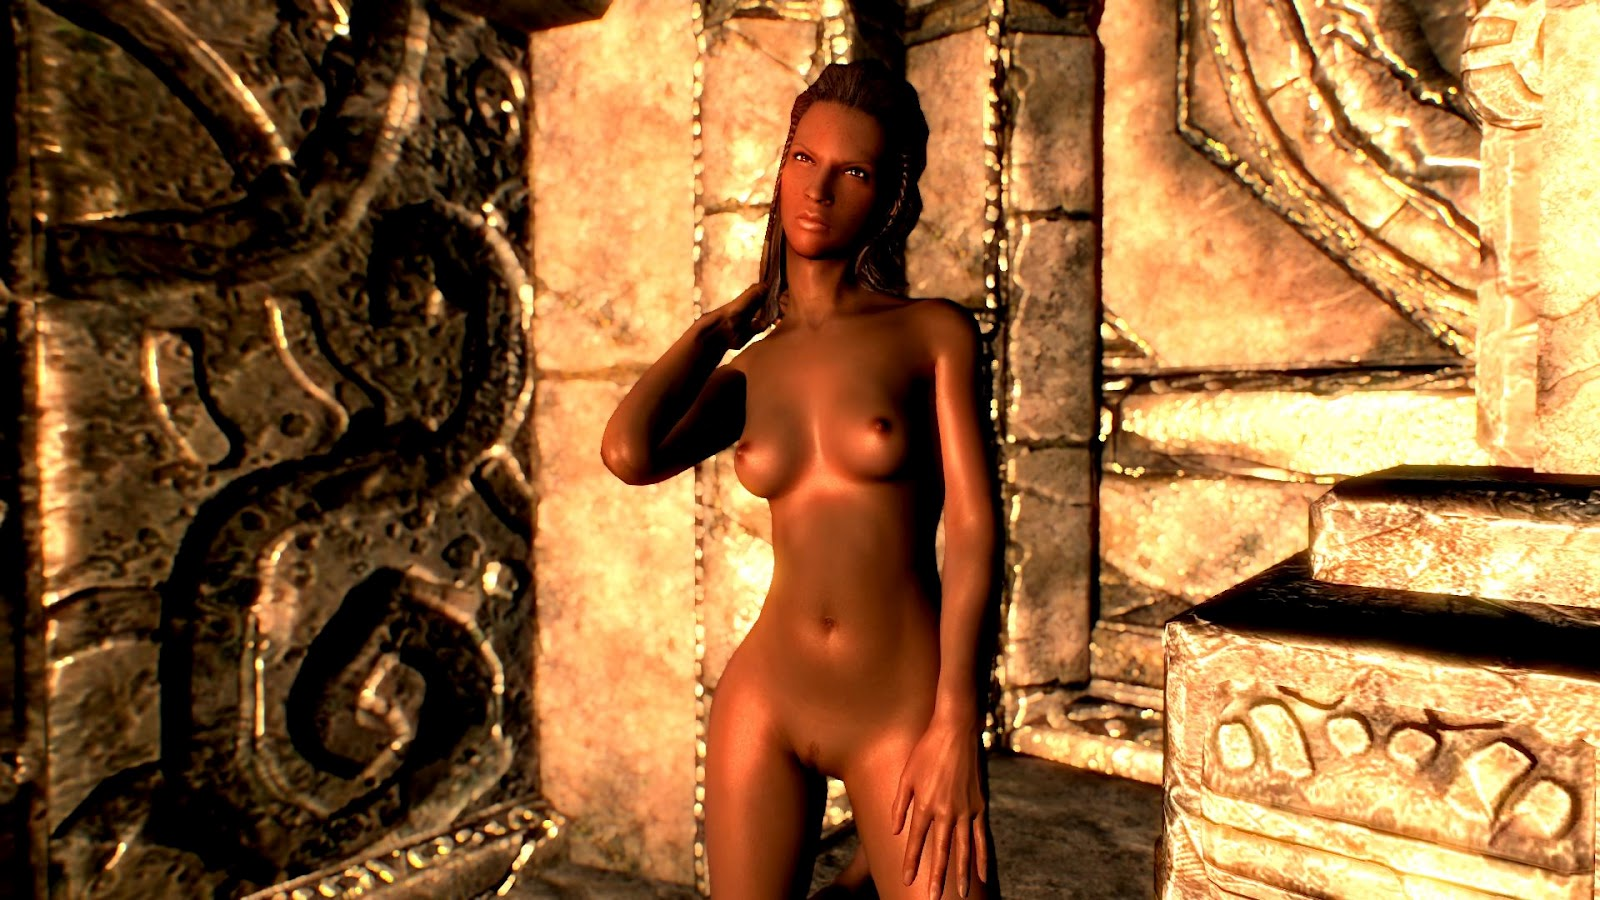 Naked pic of skyrim women and sex adult galleries